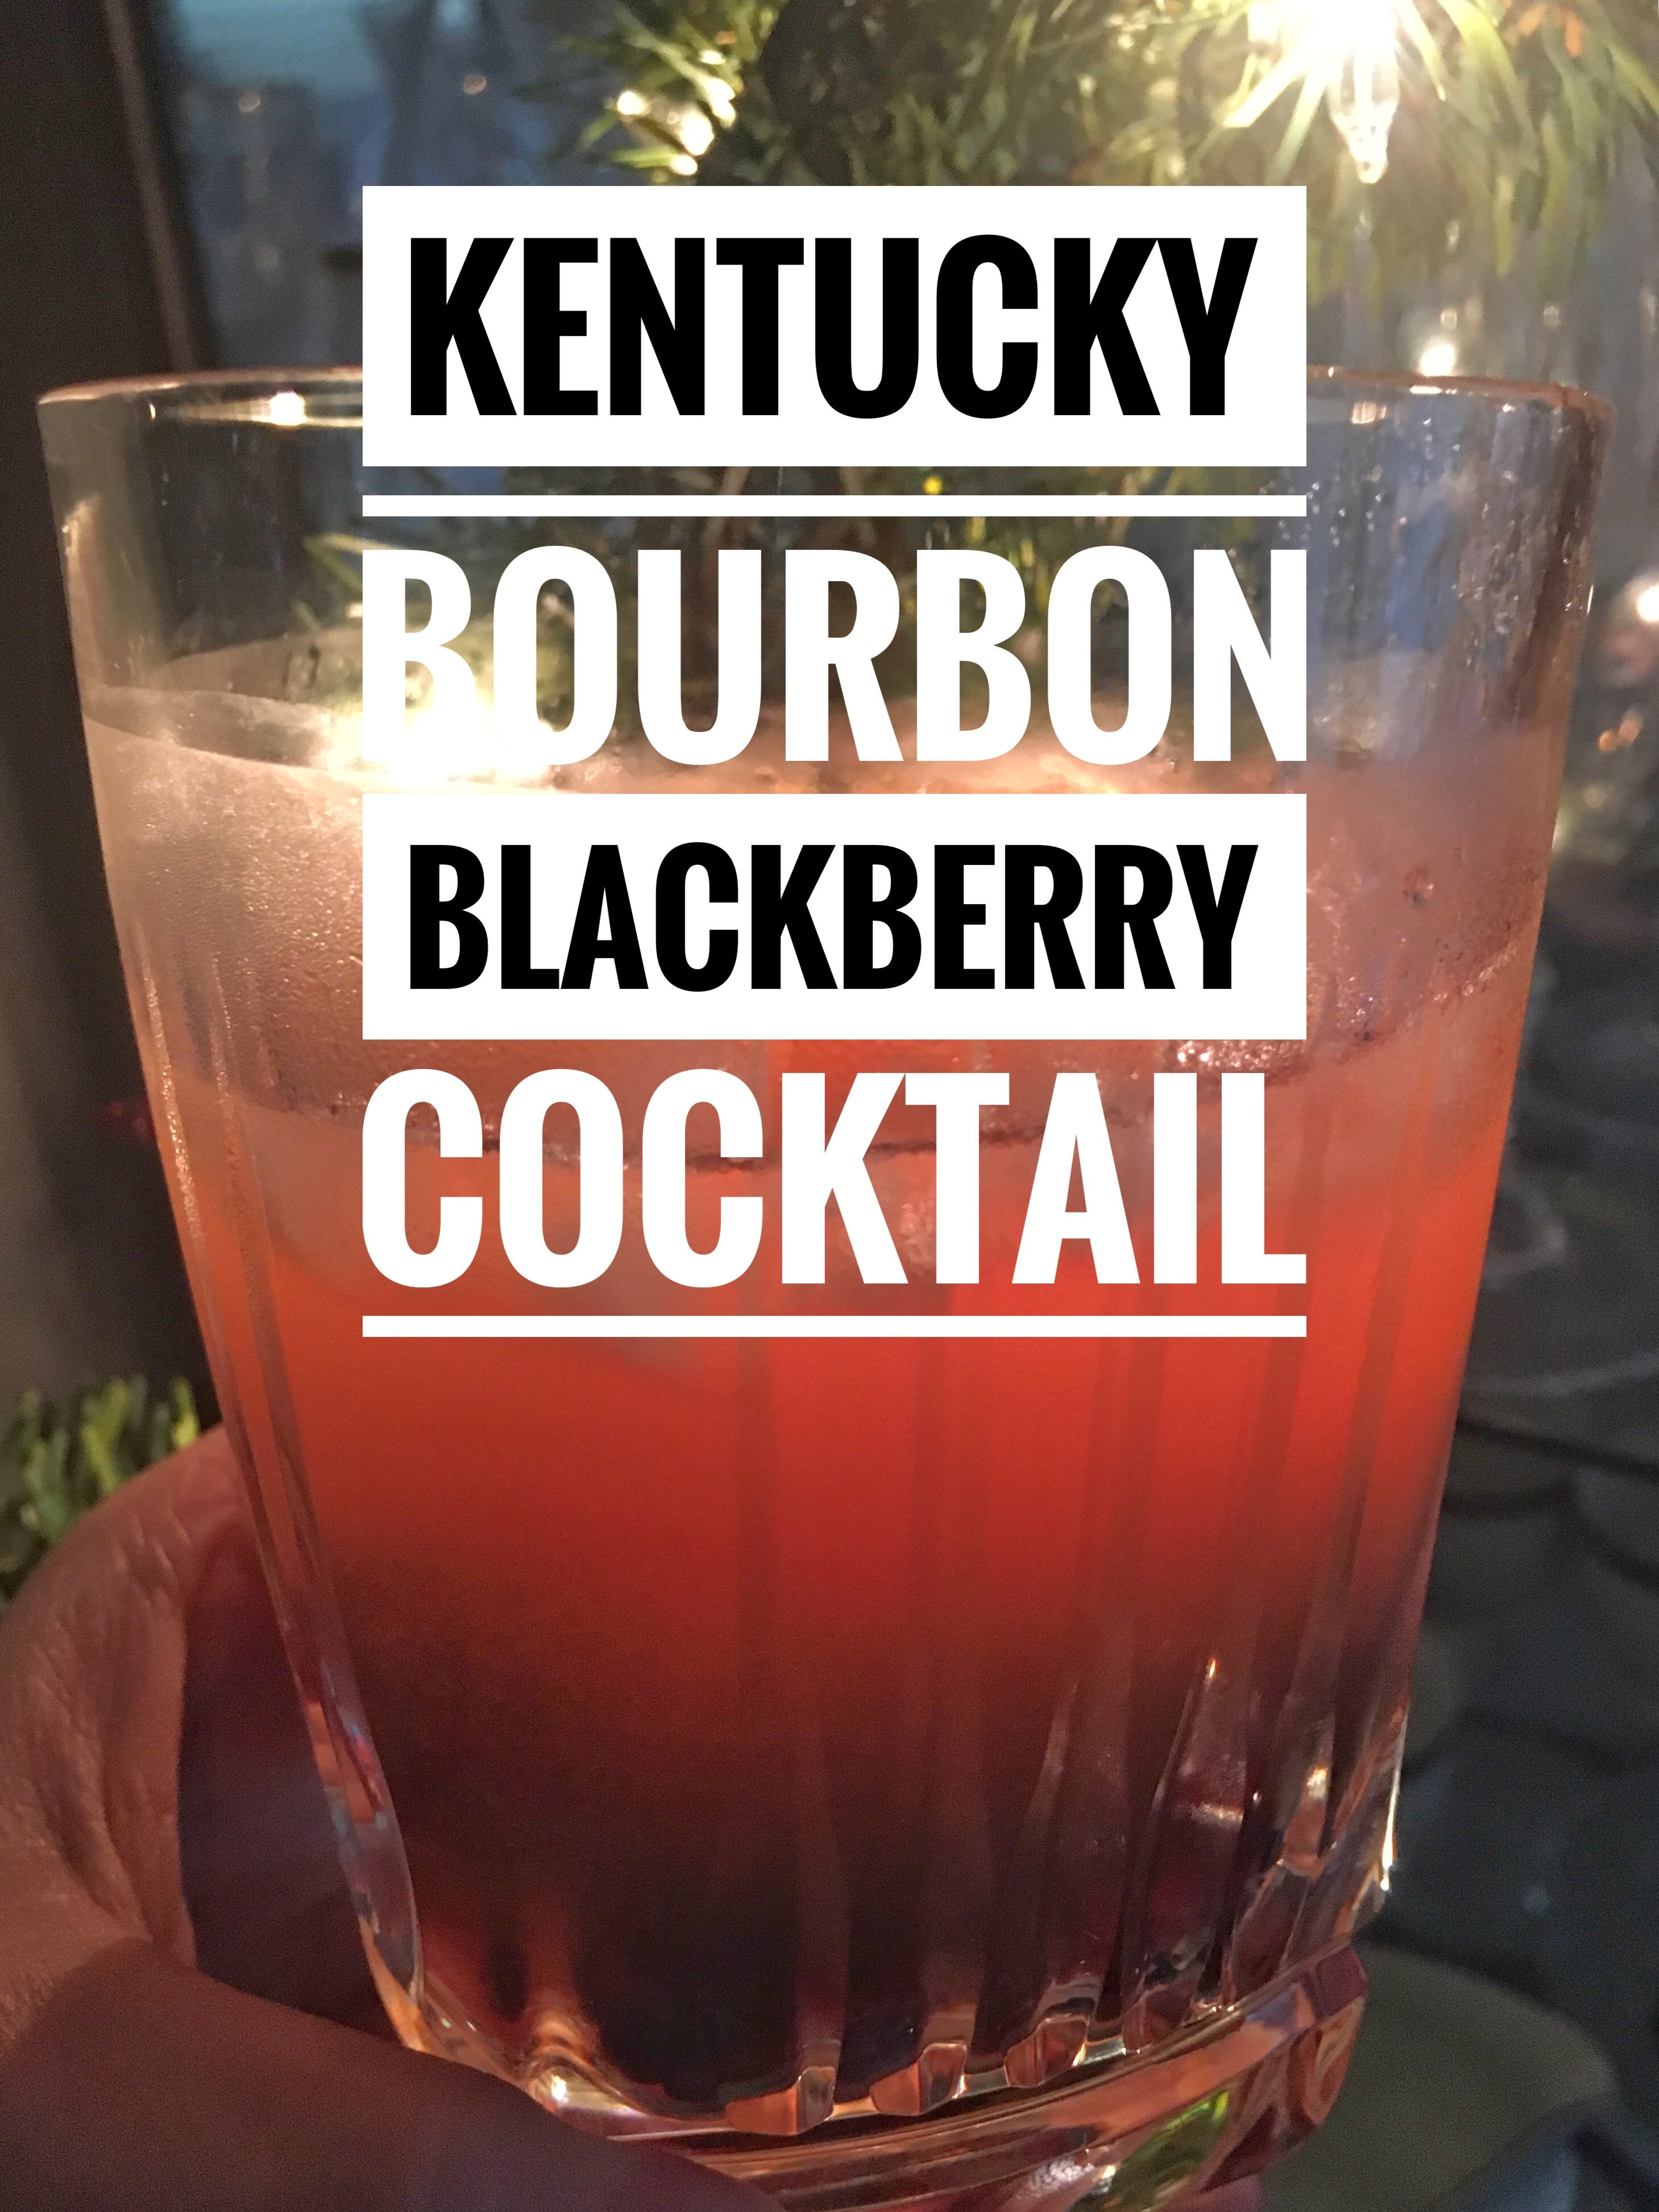 Kentucky Bourbon Blackberry Cocktail is refreshing during the holidays.